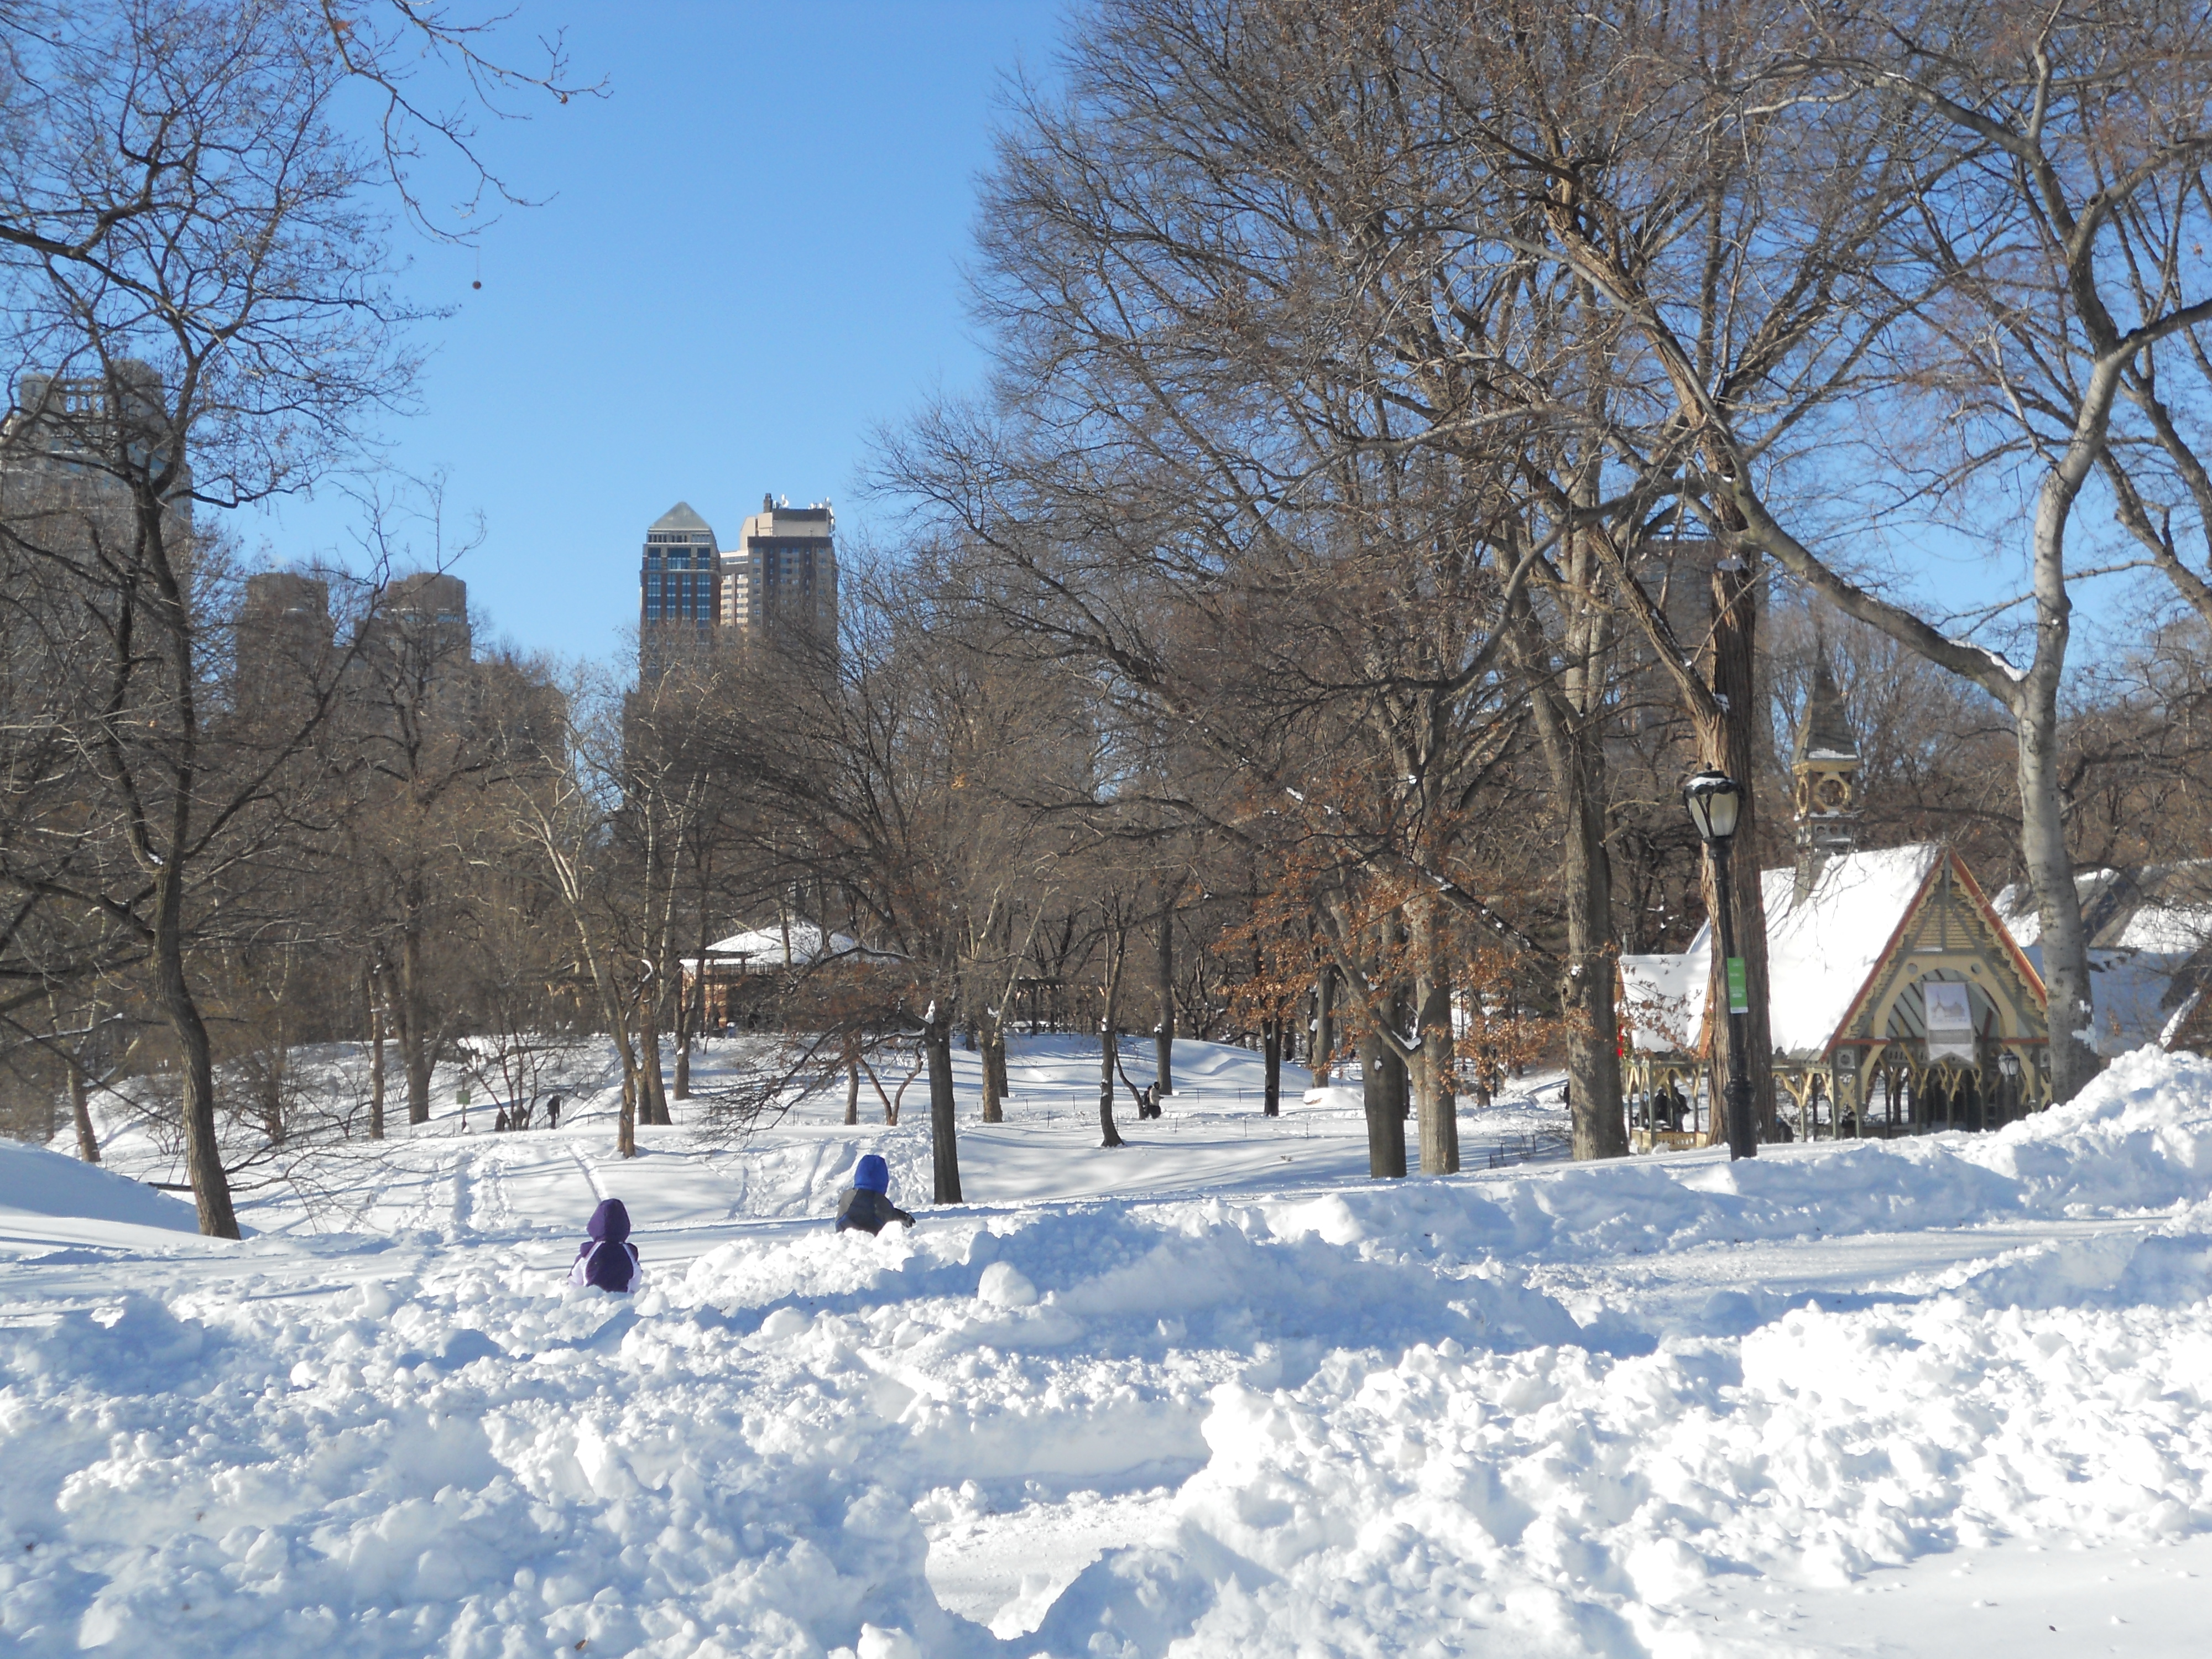 2010 blizzard stranded in new york city for new year 39 s eve for Things to do in central park today